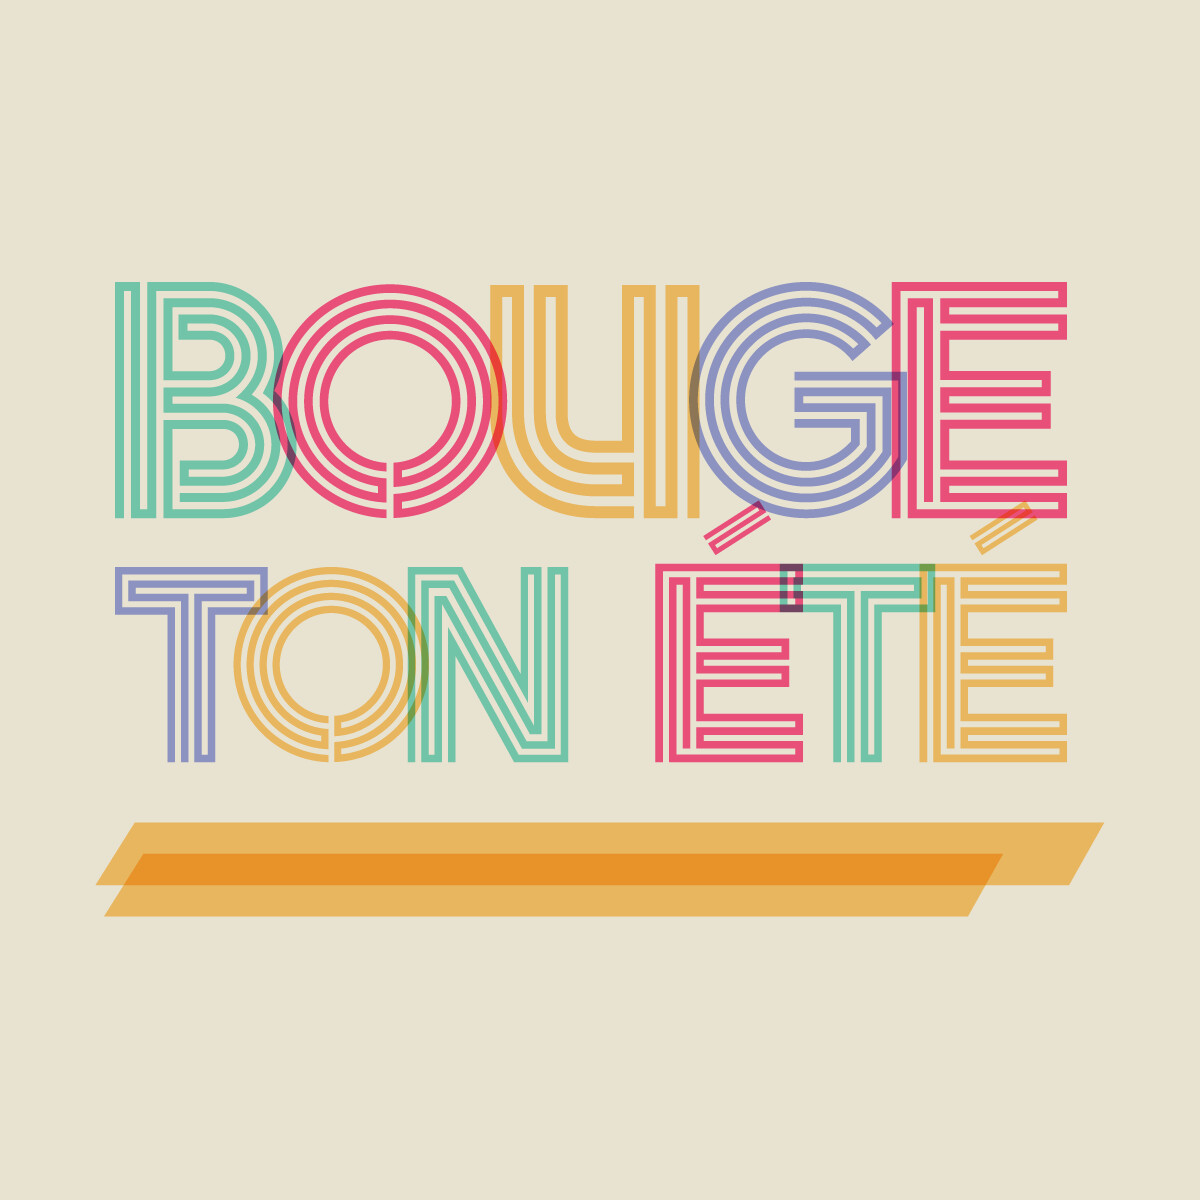 August 9 - 13 août - Camp d'été - French Day Camp - For ages 6 to 12